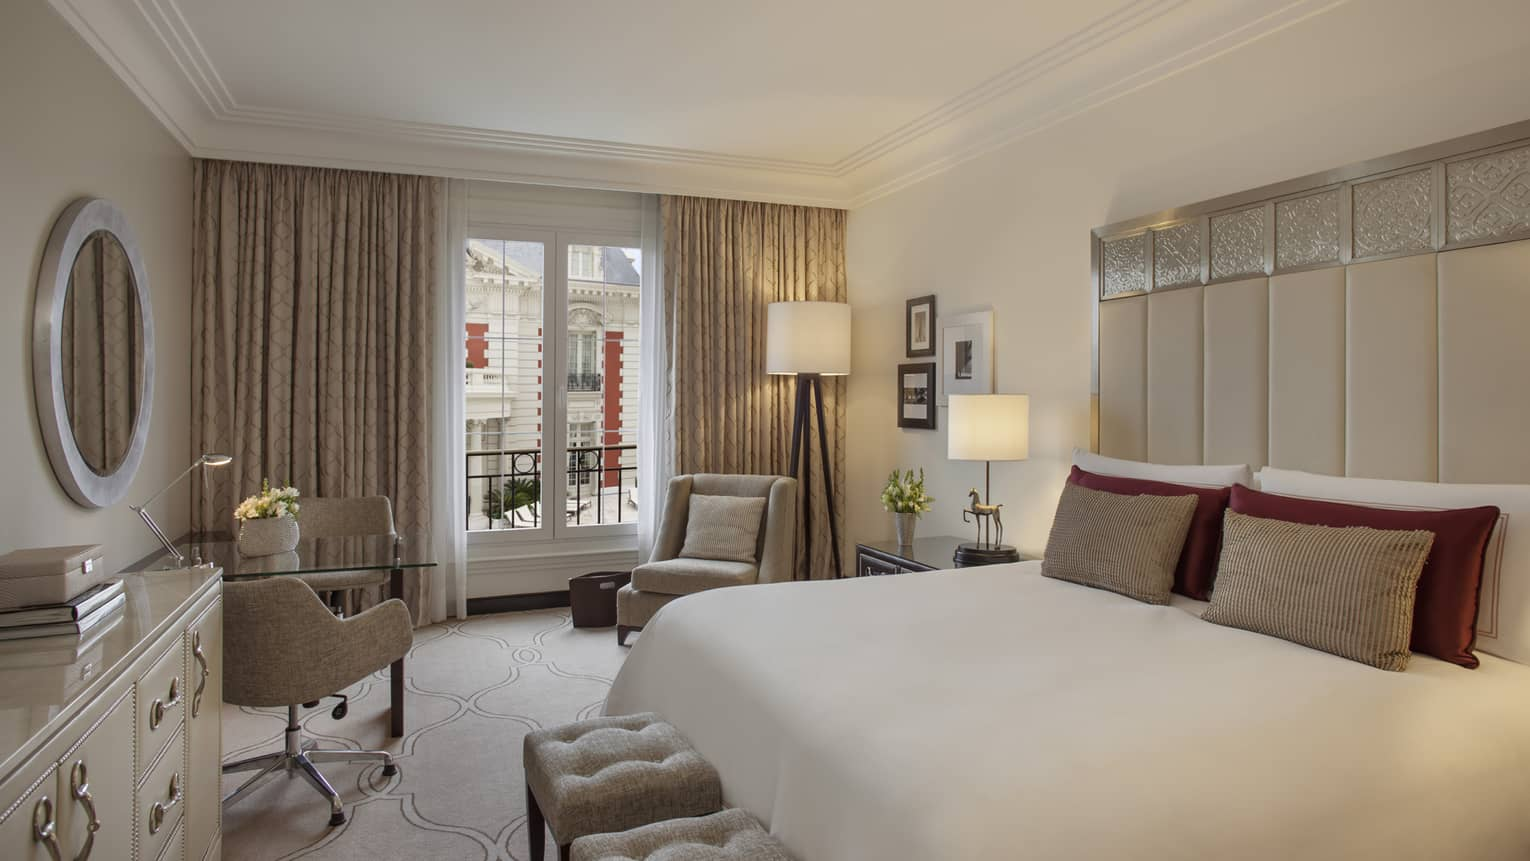 Mansion-View Room with clean, white-and-cream decor, tall padded headboard with silver details, white plush benches, chairs